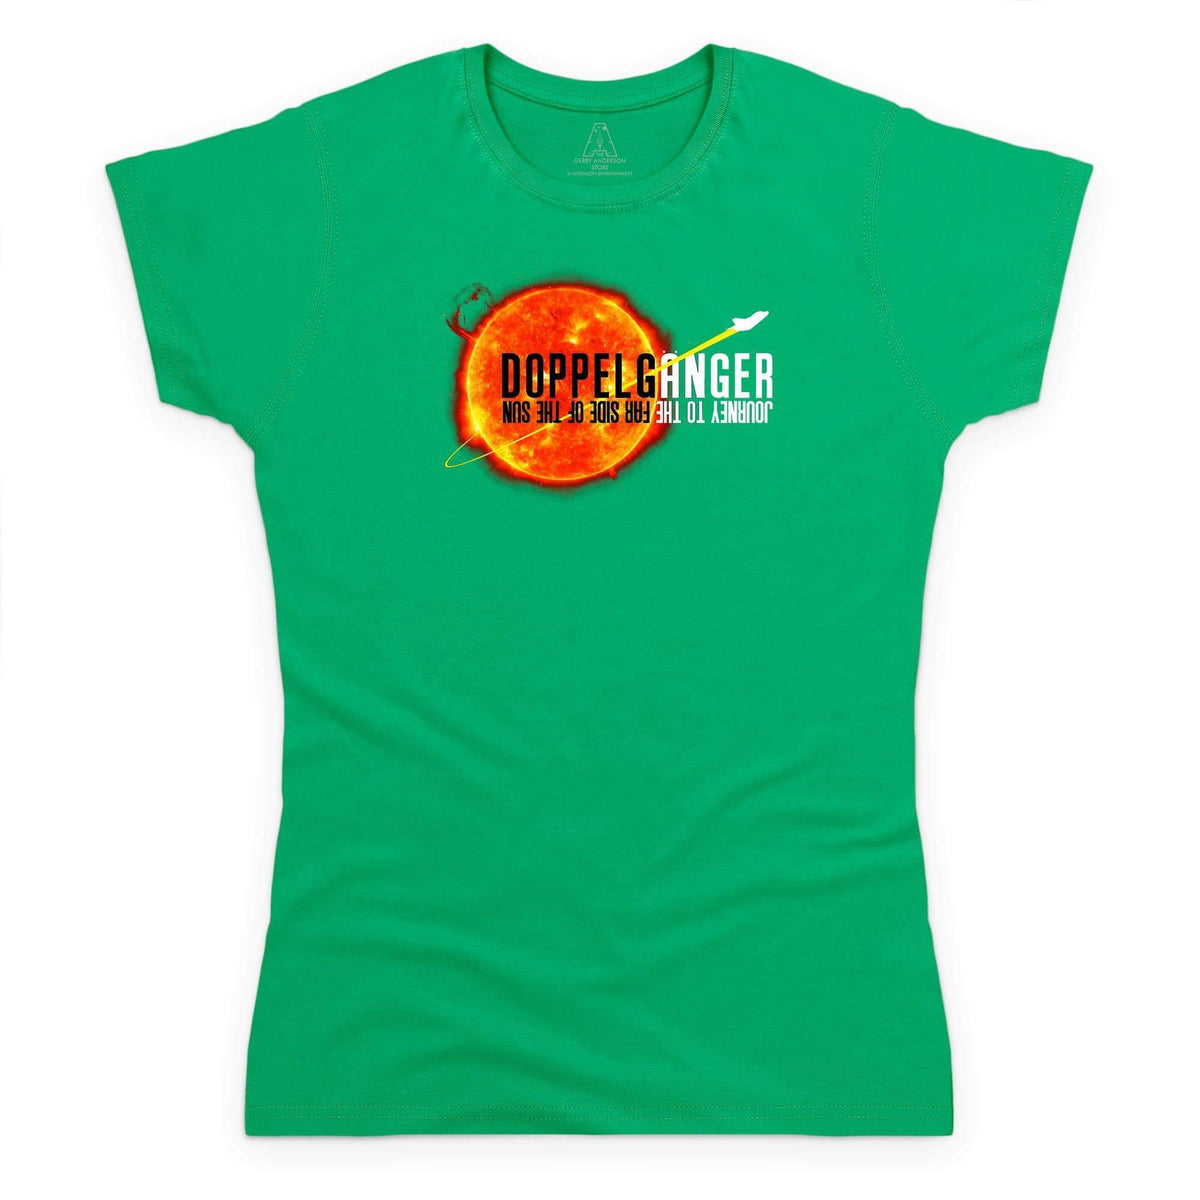 Doppelgänger Logo Women's T-shirt [Official & Exclusive] - The Gerry Anderson Store